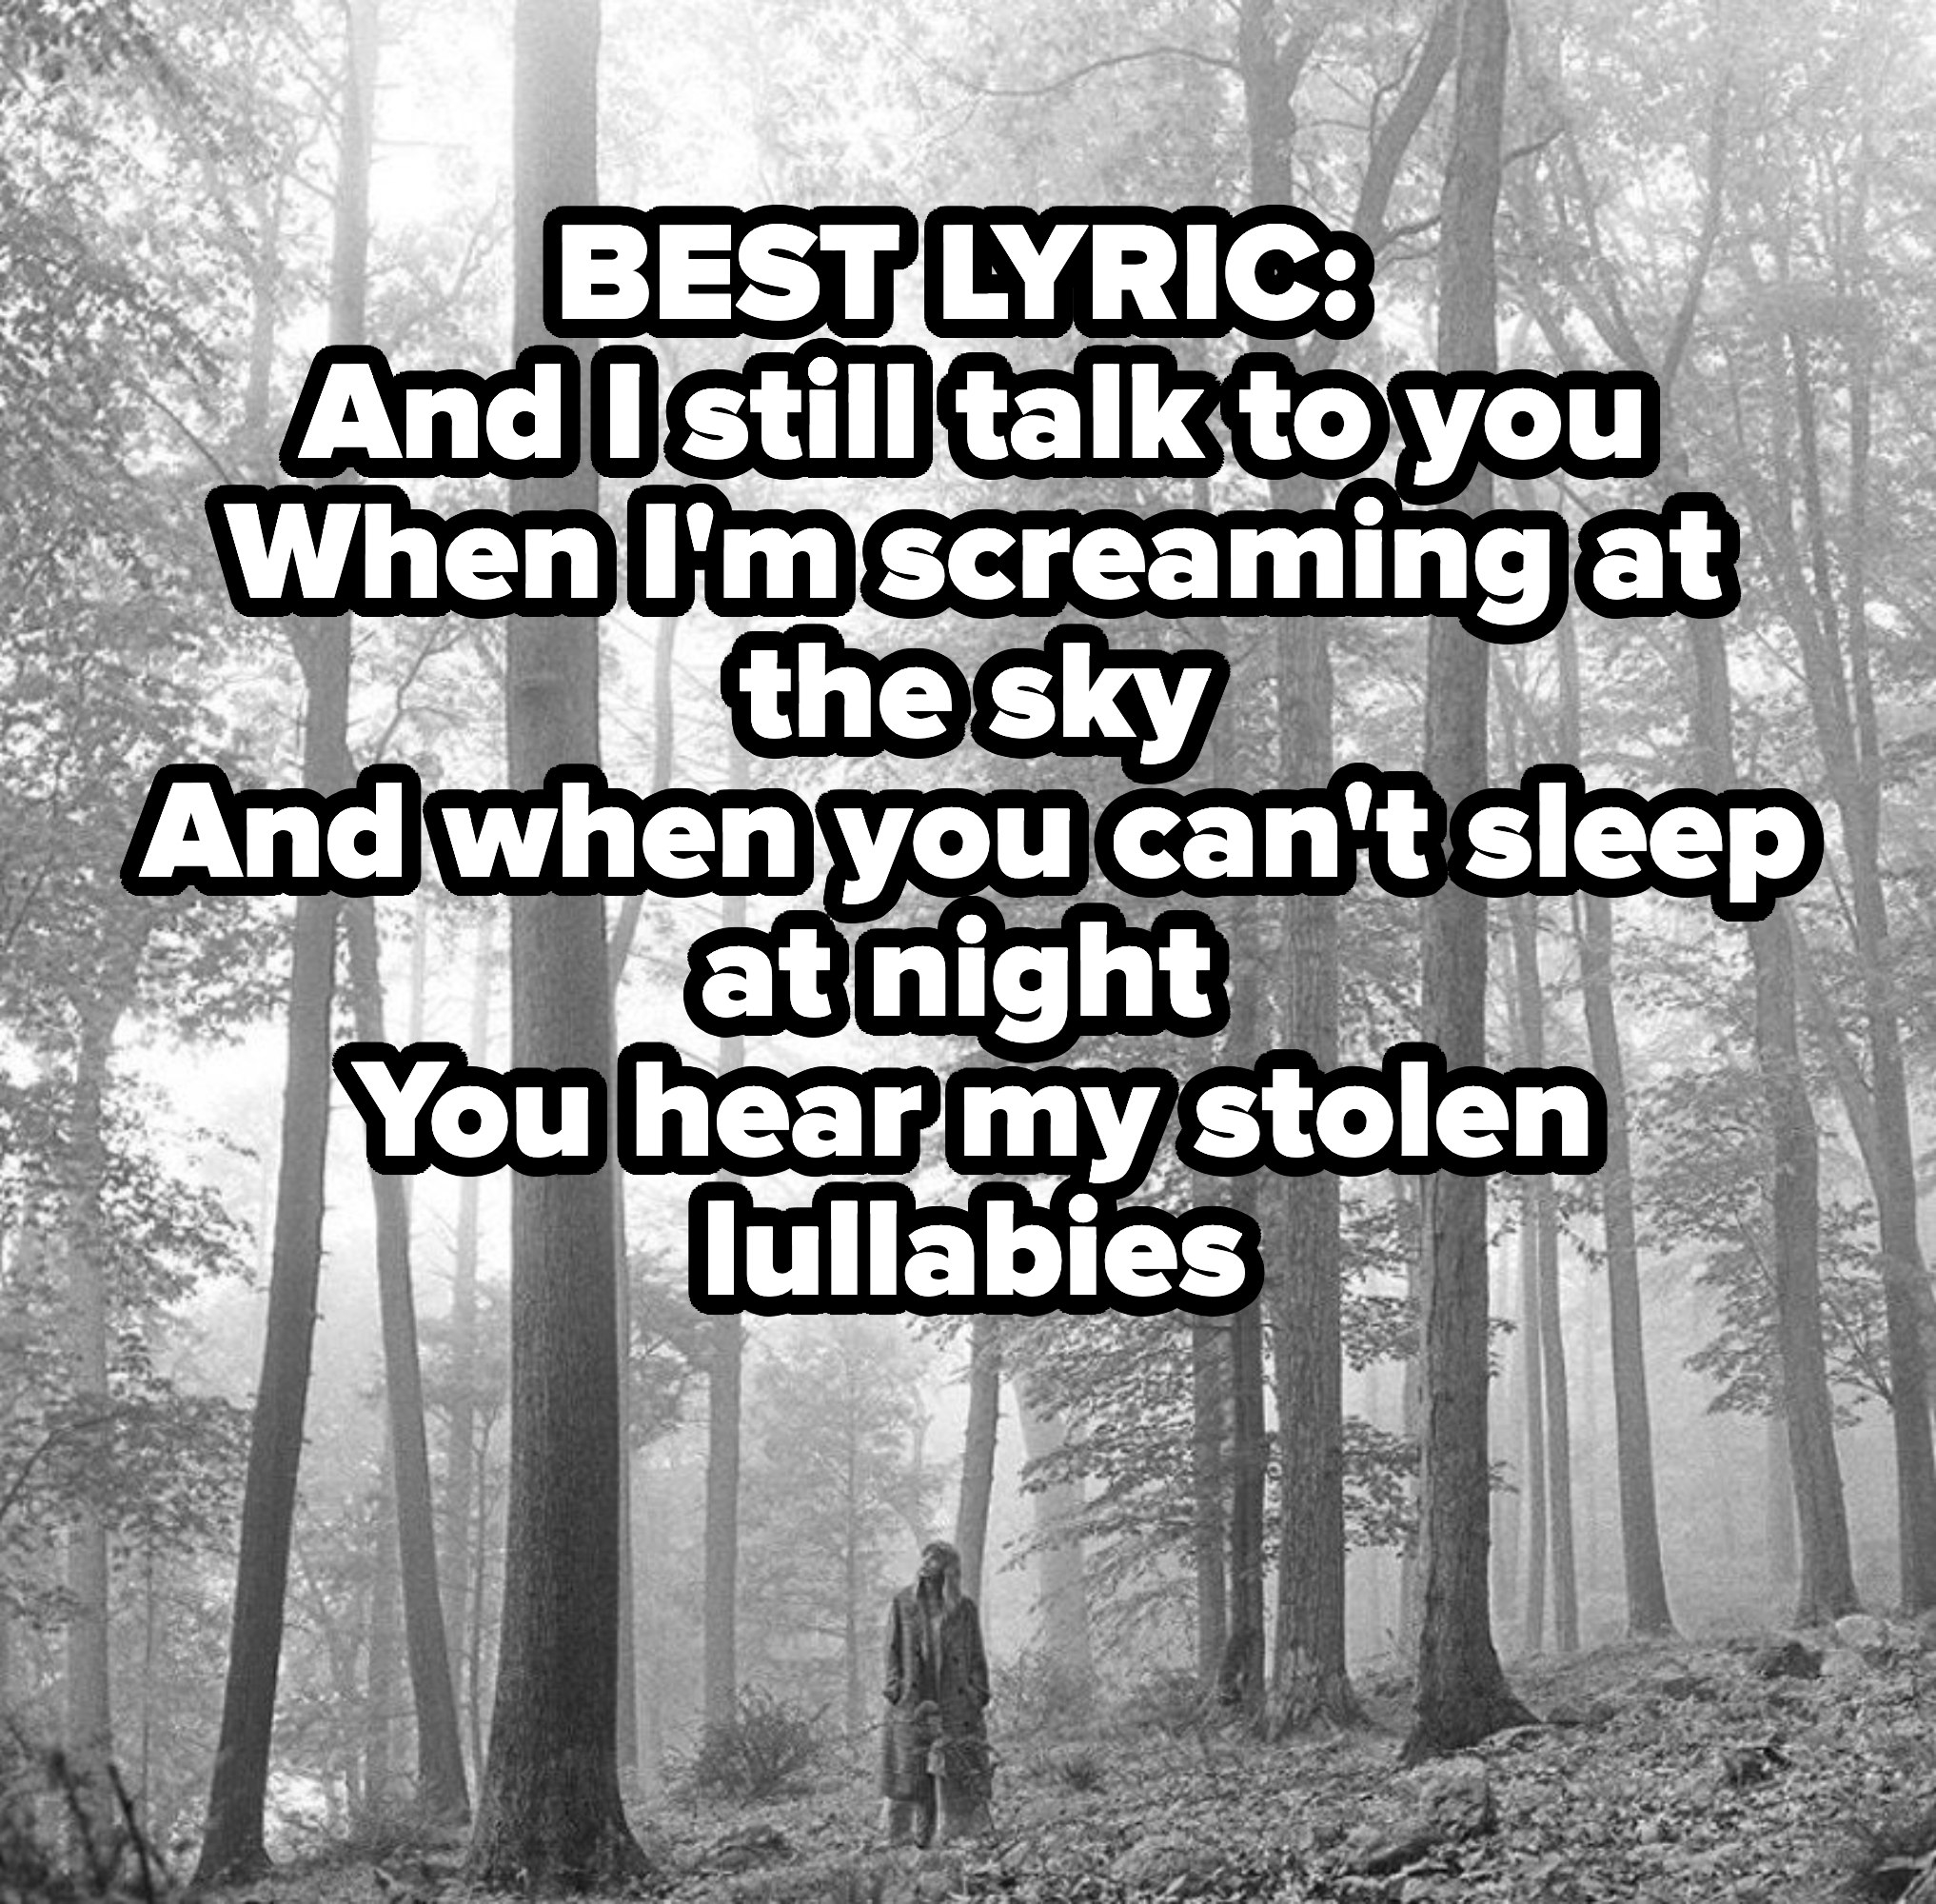 BEST LYRIC: And I still talk to you (When I'm screaming at the sky) And when you can't sleep at night (You hear my stolen lullabies)